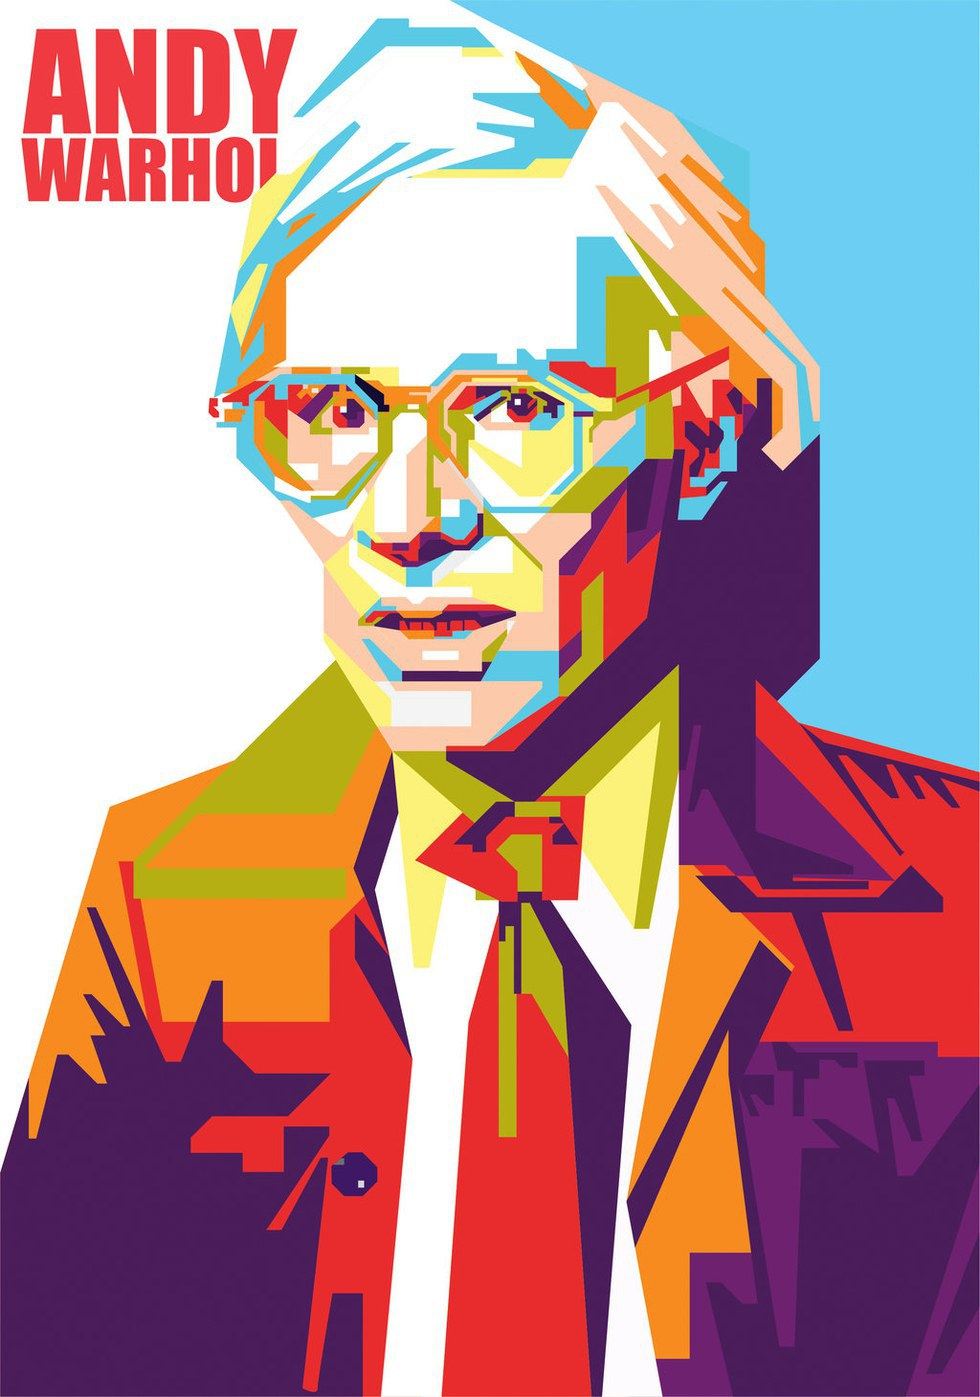 andy warhol art - HD 980×1397